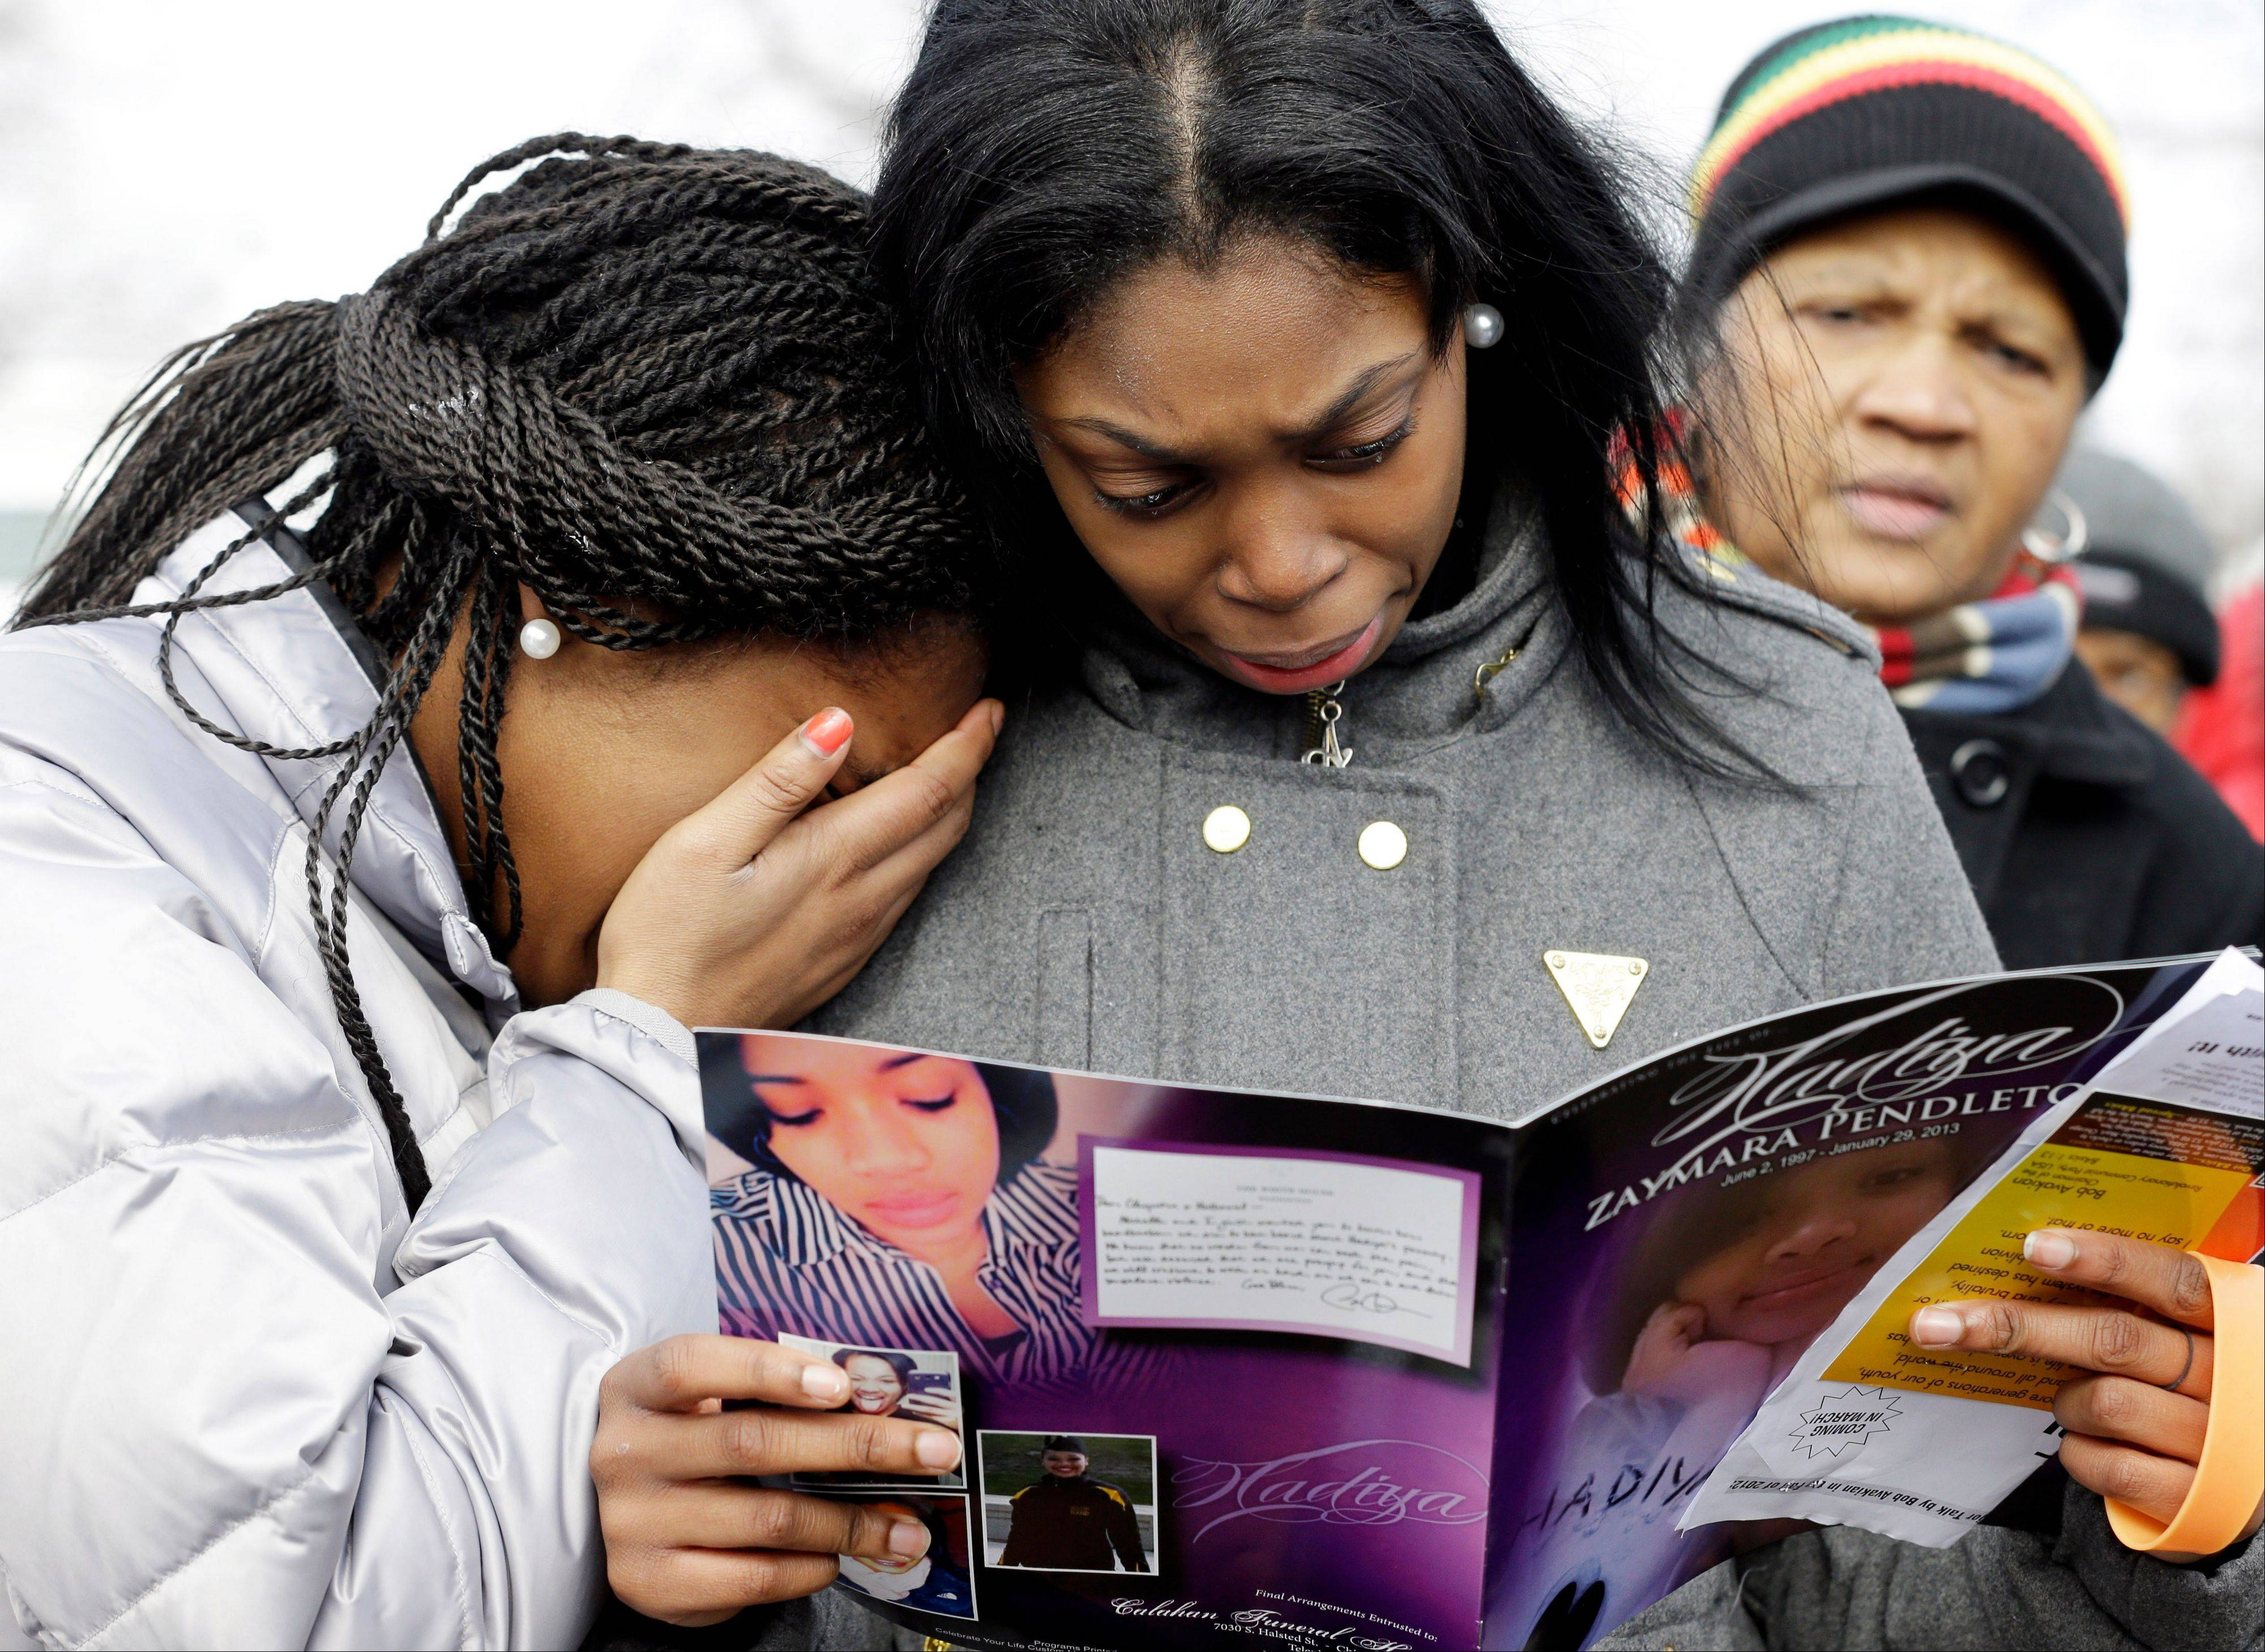 Danyia Bell, left 16, and Artureana Terrell , 16, react as they read a program for the funeral of Hadiya Pendleton outside the Greater Harvest Missionary Baptist Church after the funeral service of Hadiya Pendleton Saturday in Chicago. Hundreds of mourners and dignitaries including first lady Michelle Obama packed the funeral service Saturday for a Chicago teen whose killing catapulted her into the nation's debate over gun violence.